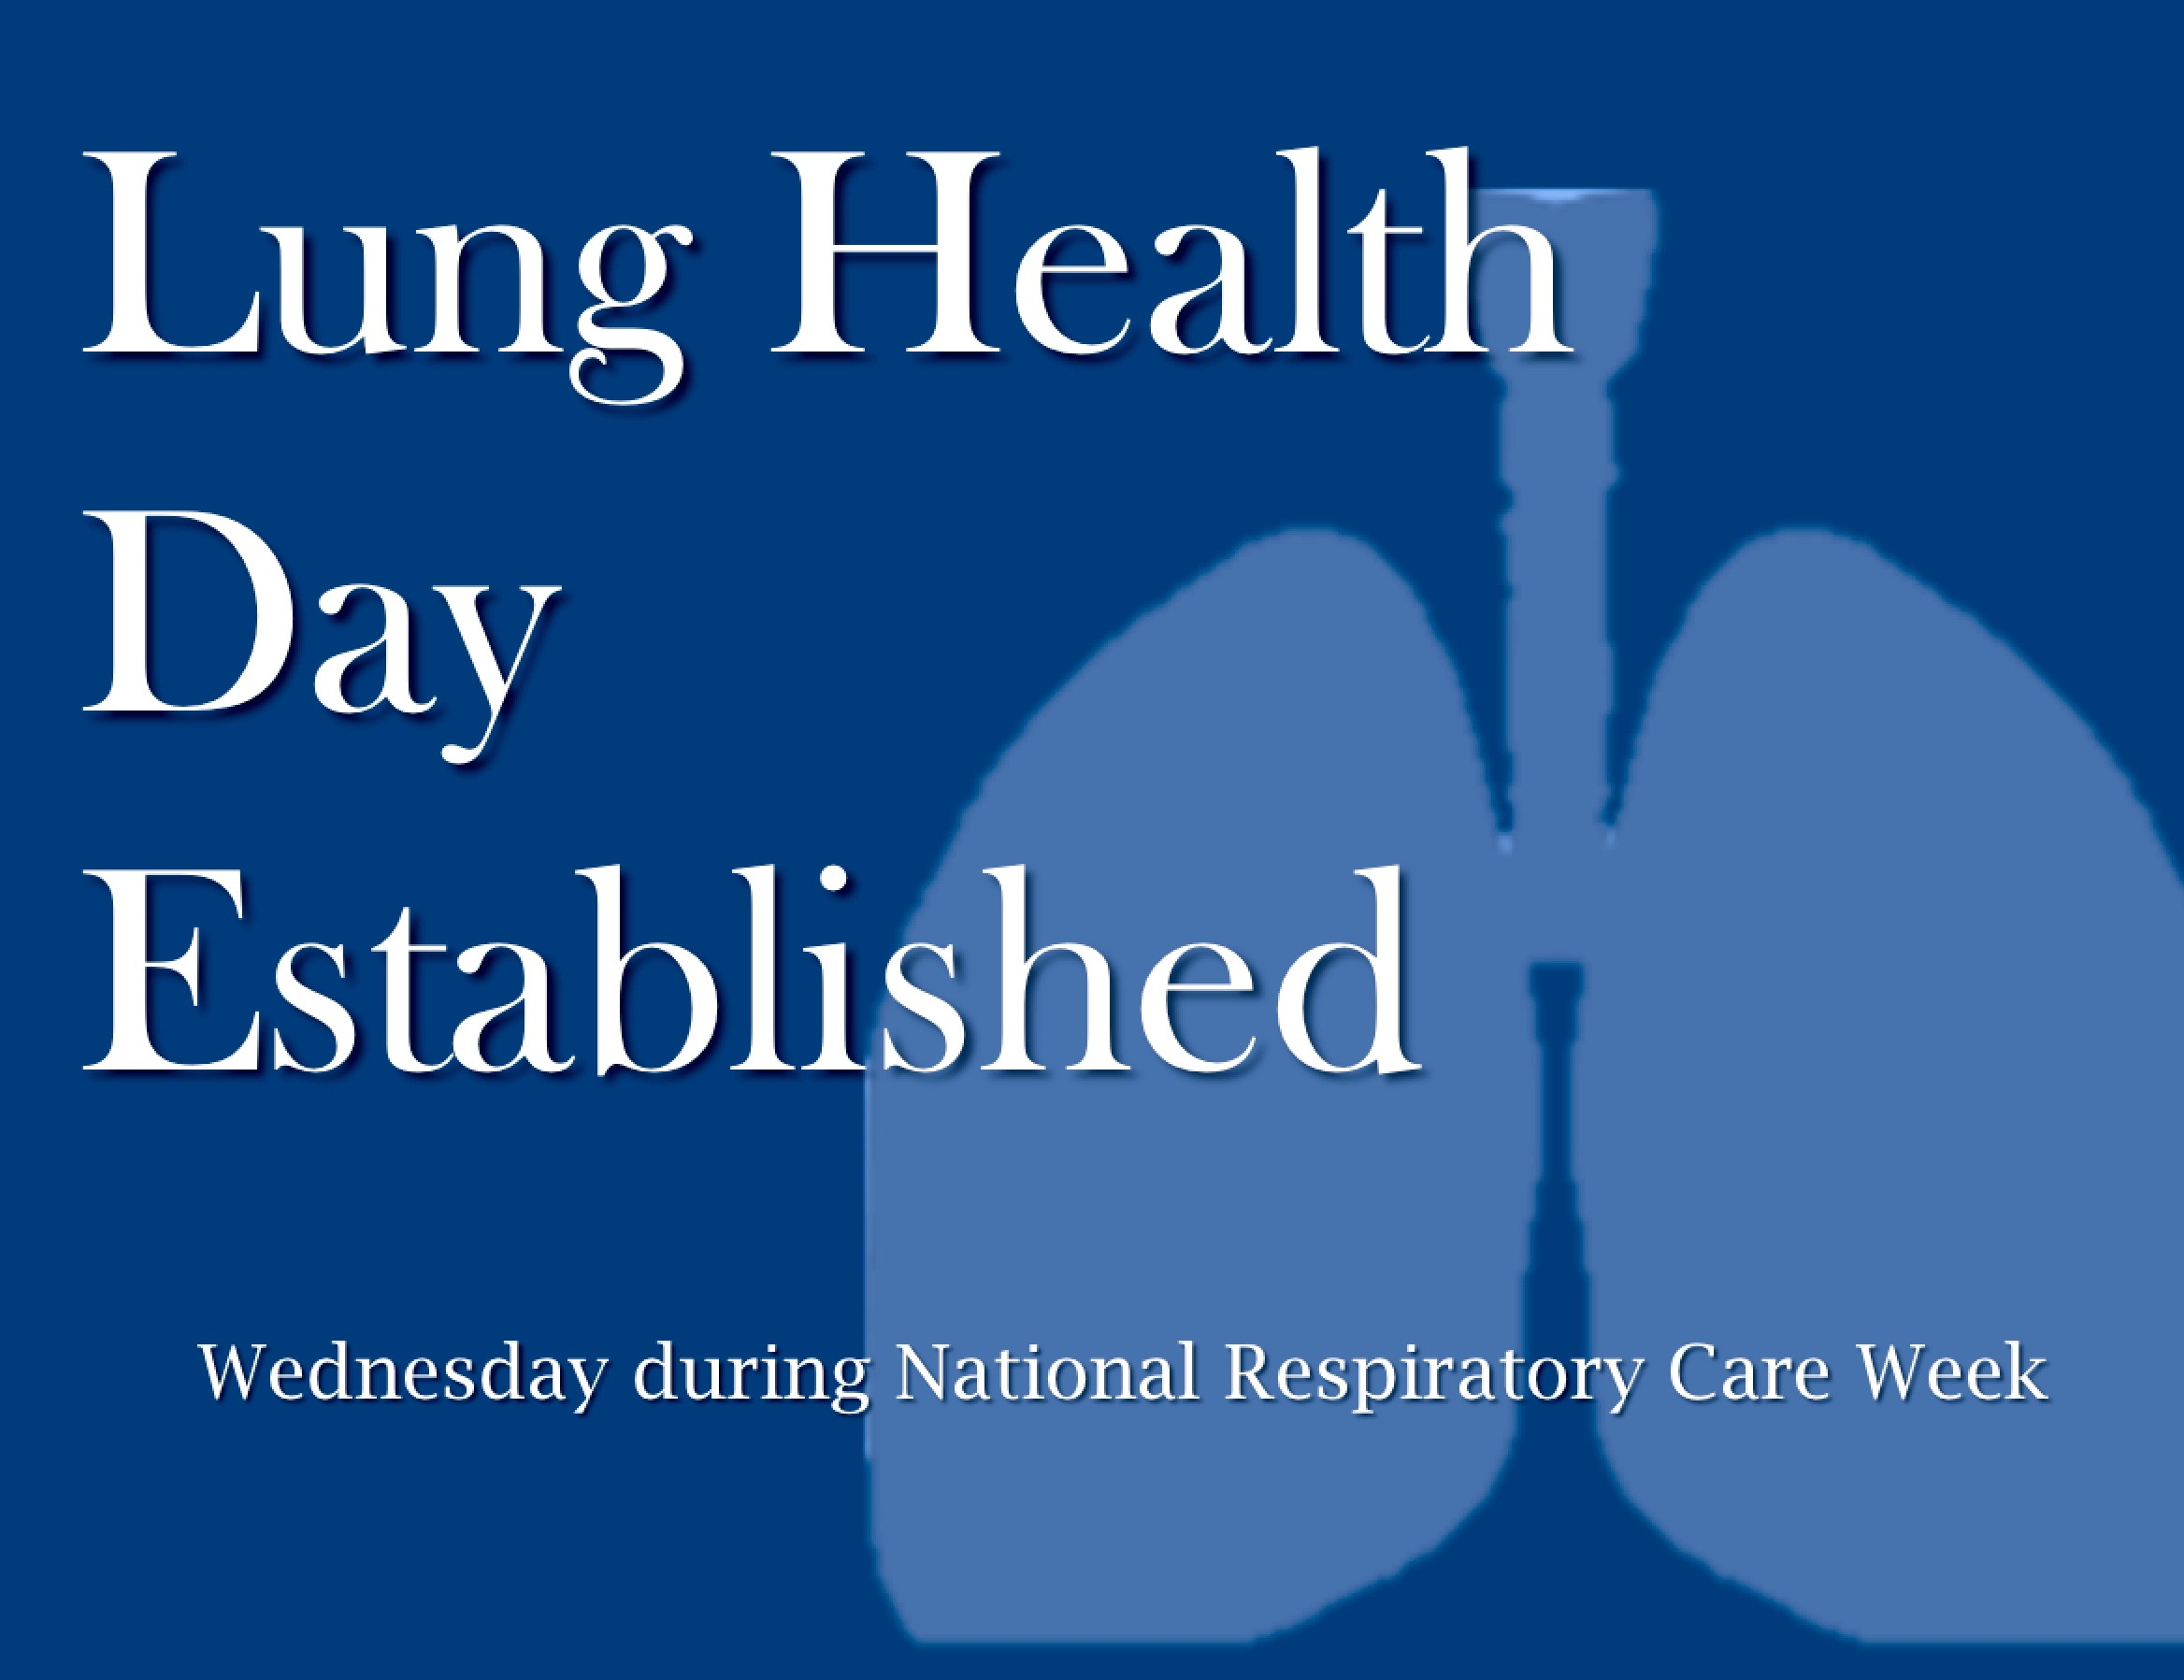 2003 Lung Health Day Launched